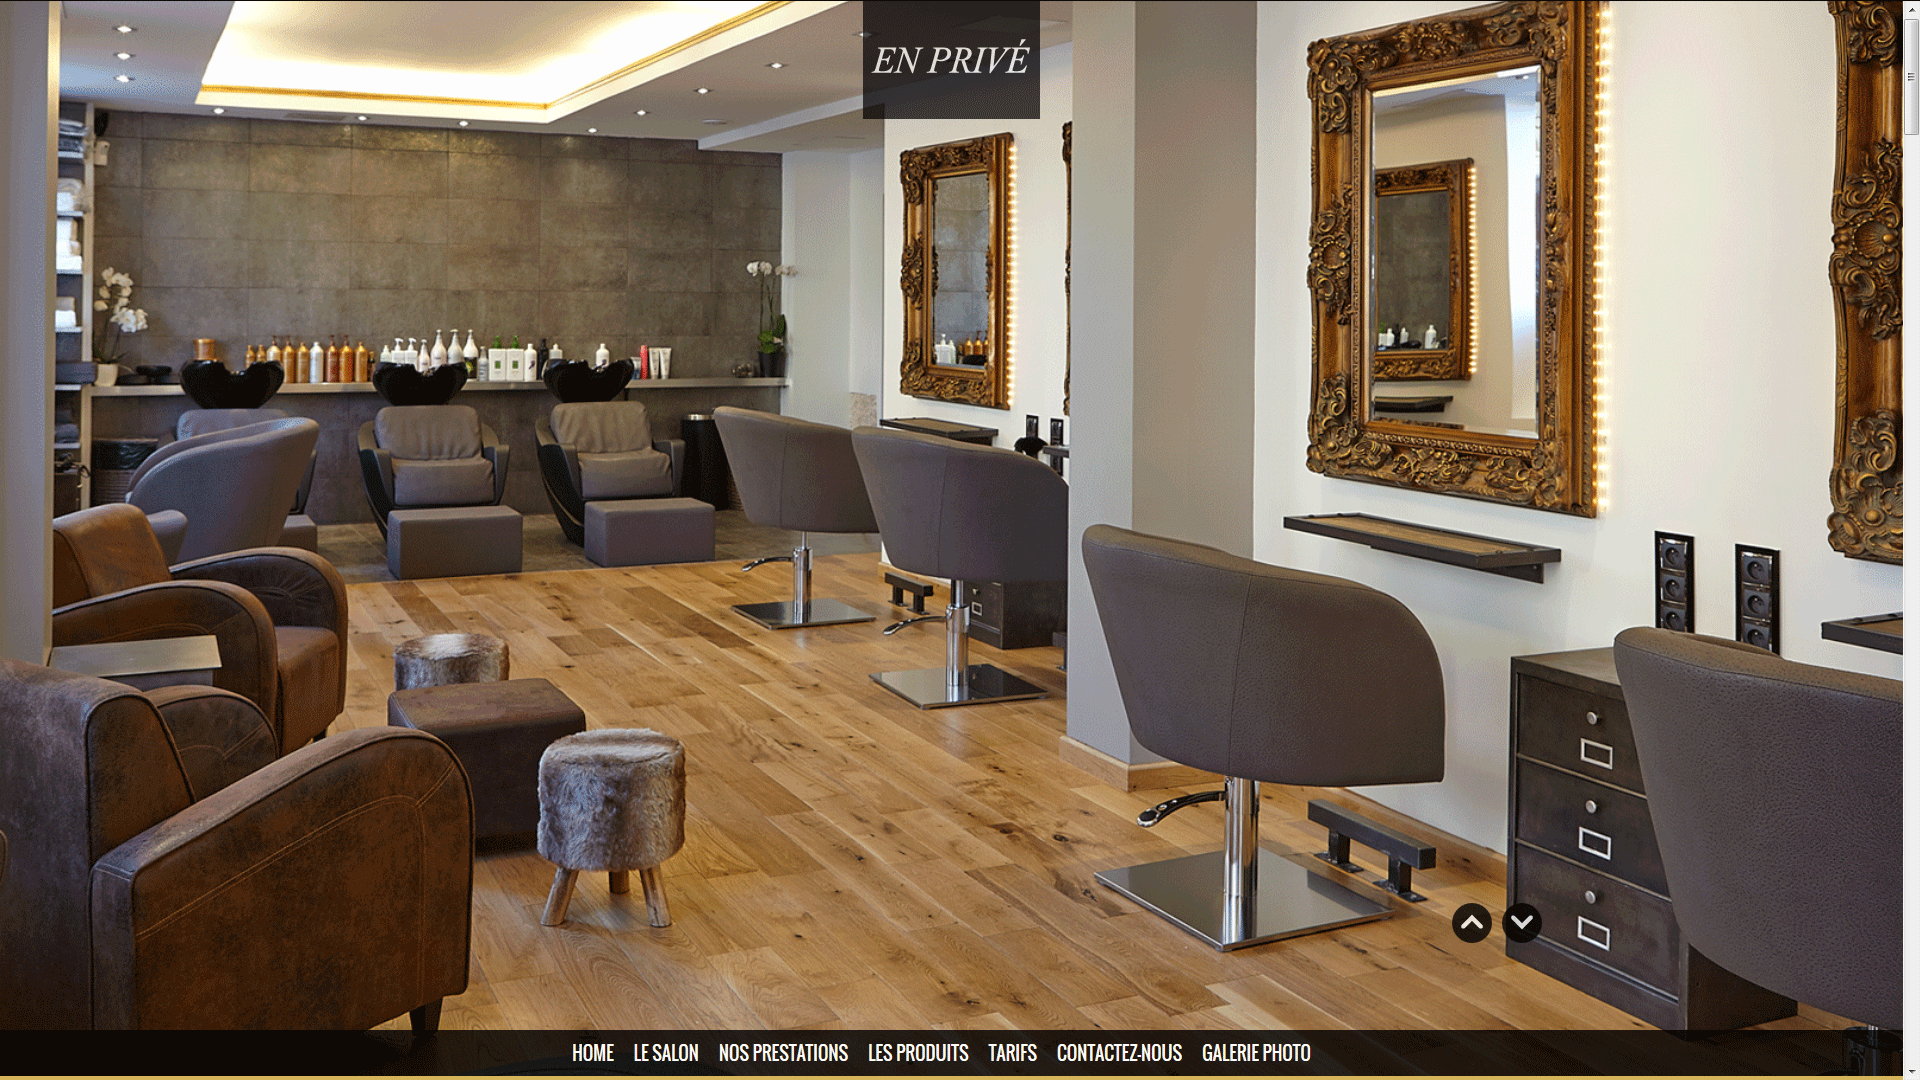 Salon de coiffure deco joy studio design gallery best design - Tarif de coiffure en salon ...